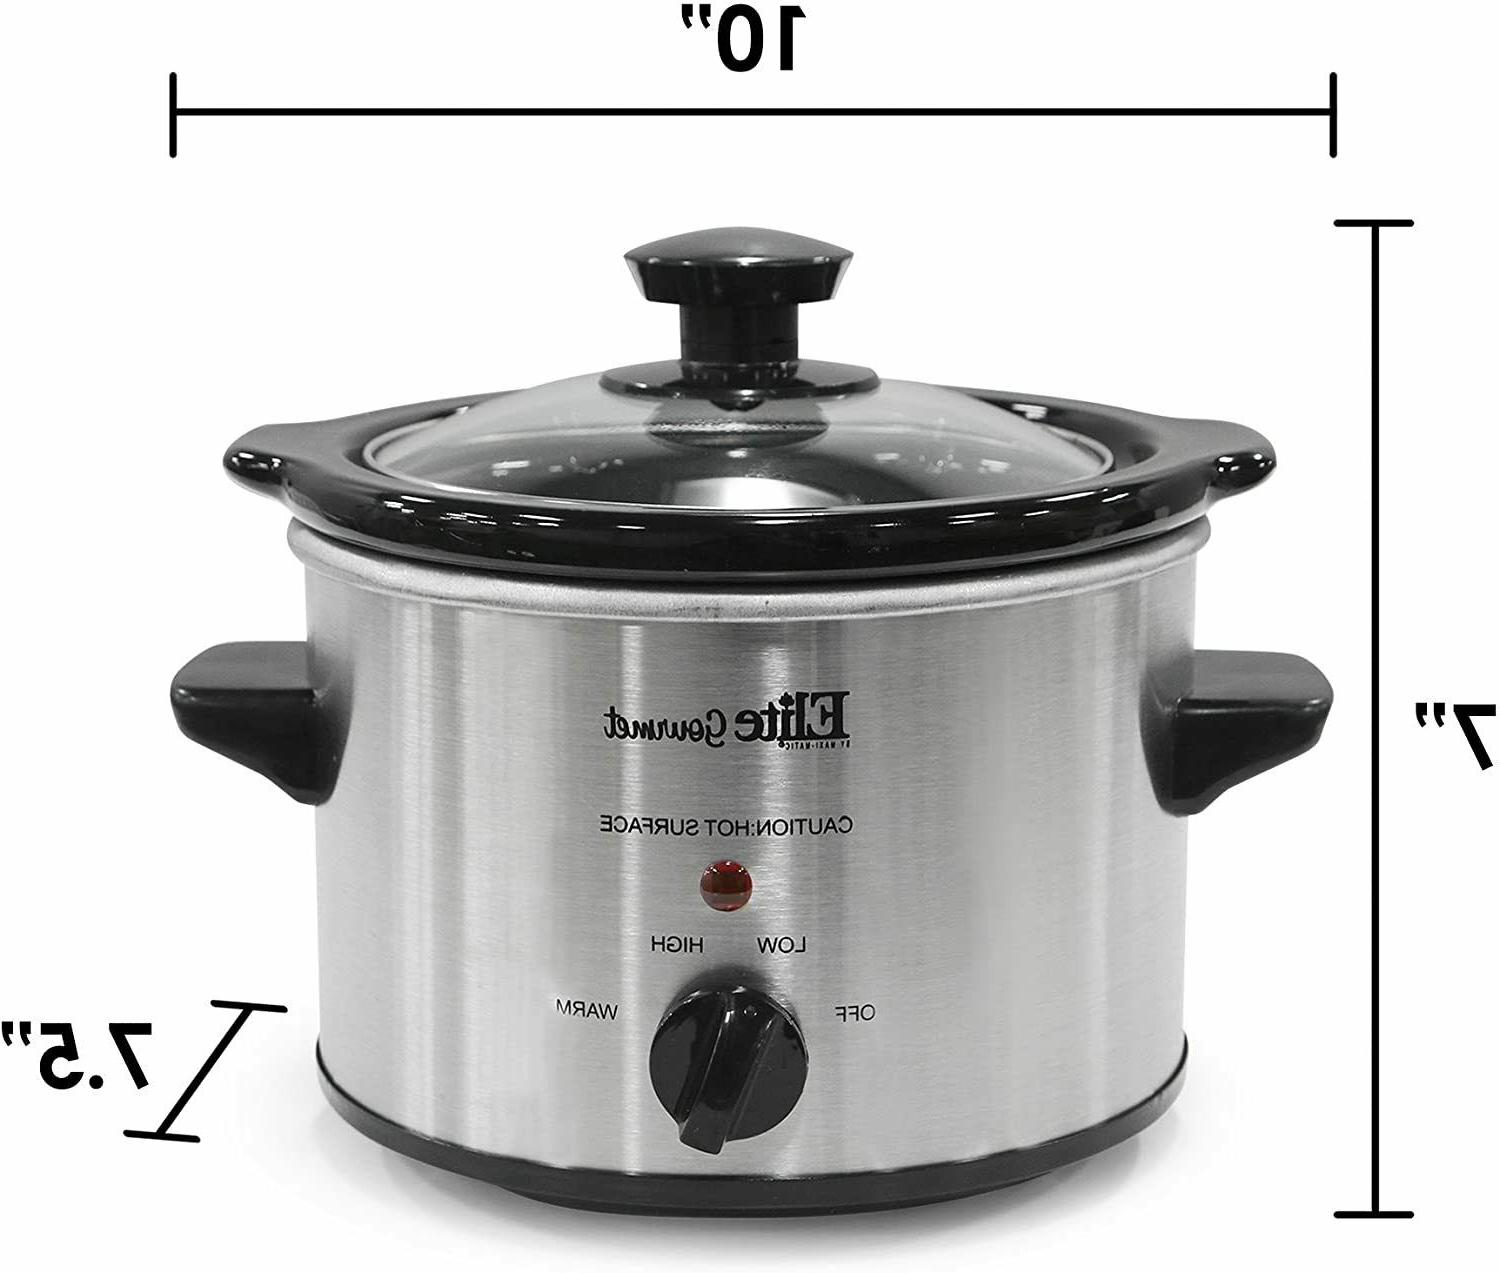 Small Cooker Stainless Steel Crock Pot Kitchen Appliance